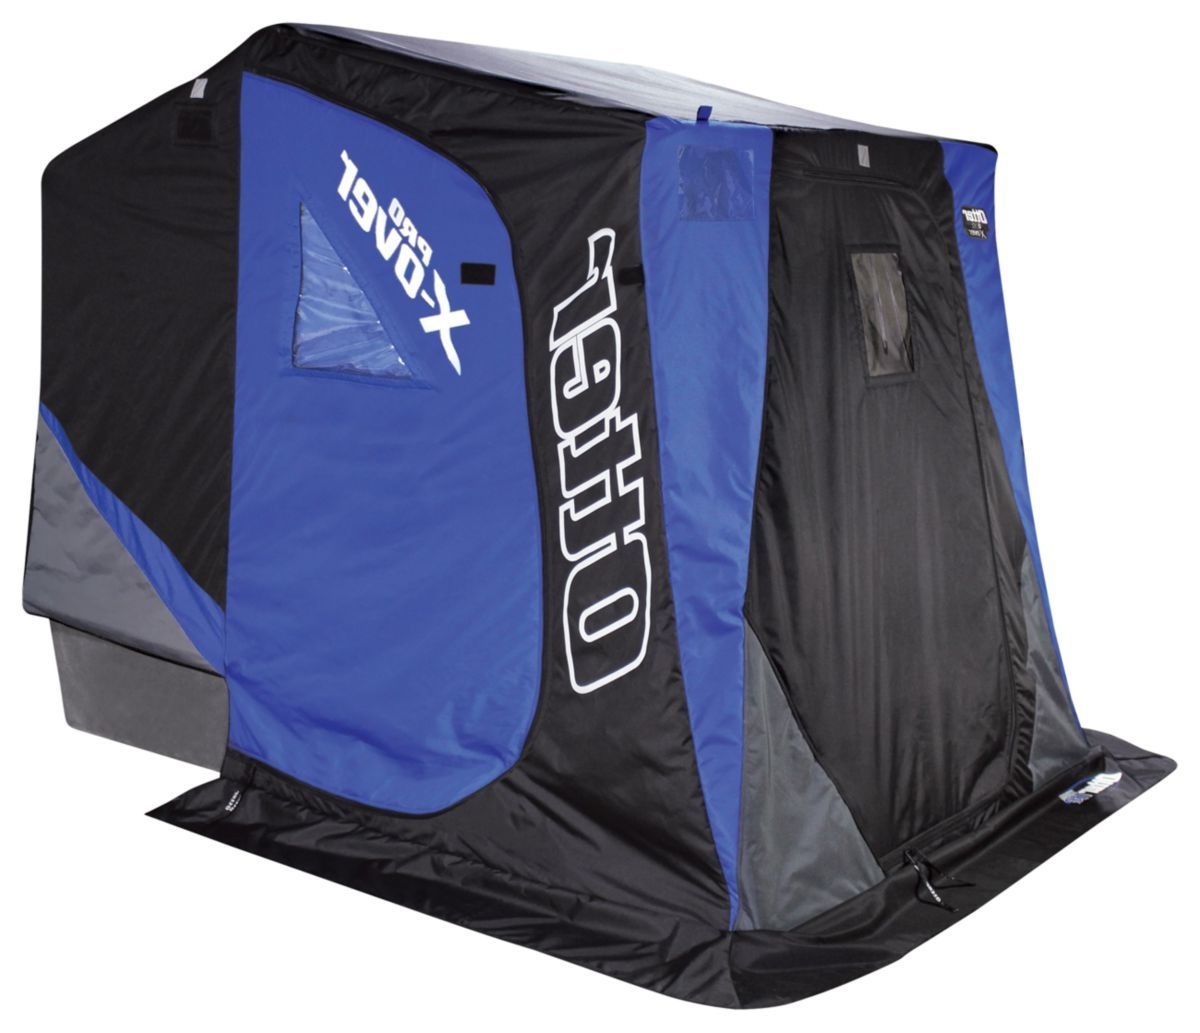 Otter Outdoors XT Pro X-Over Resort Ice Shelter